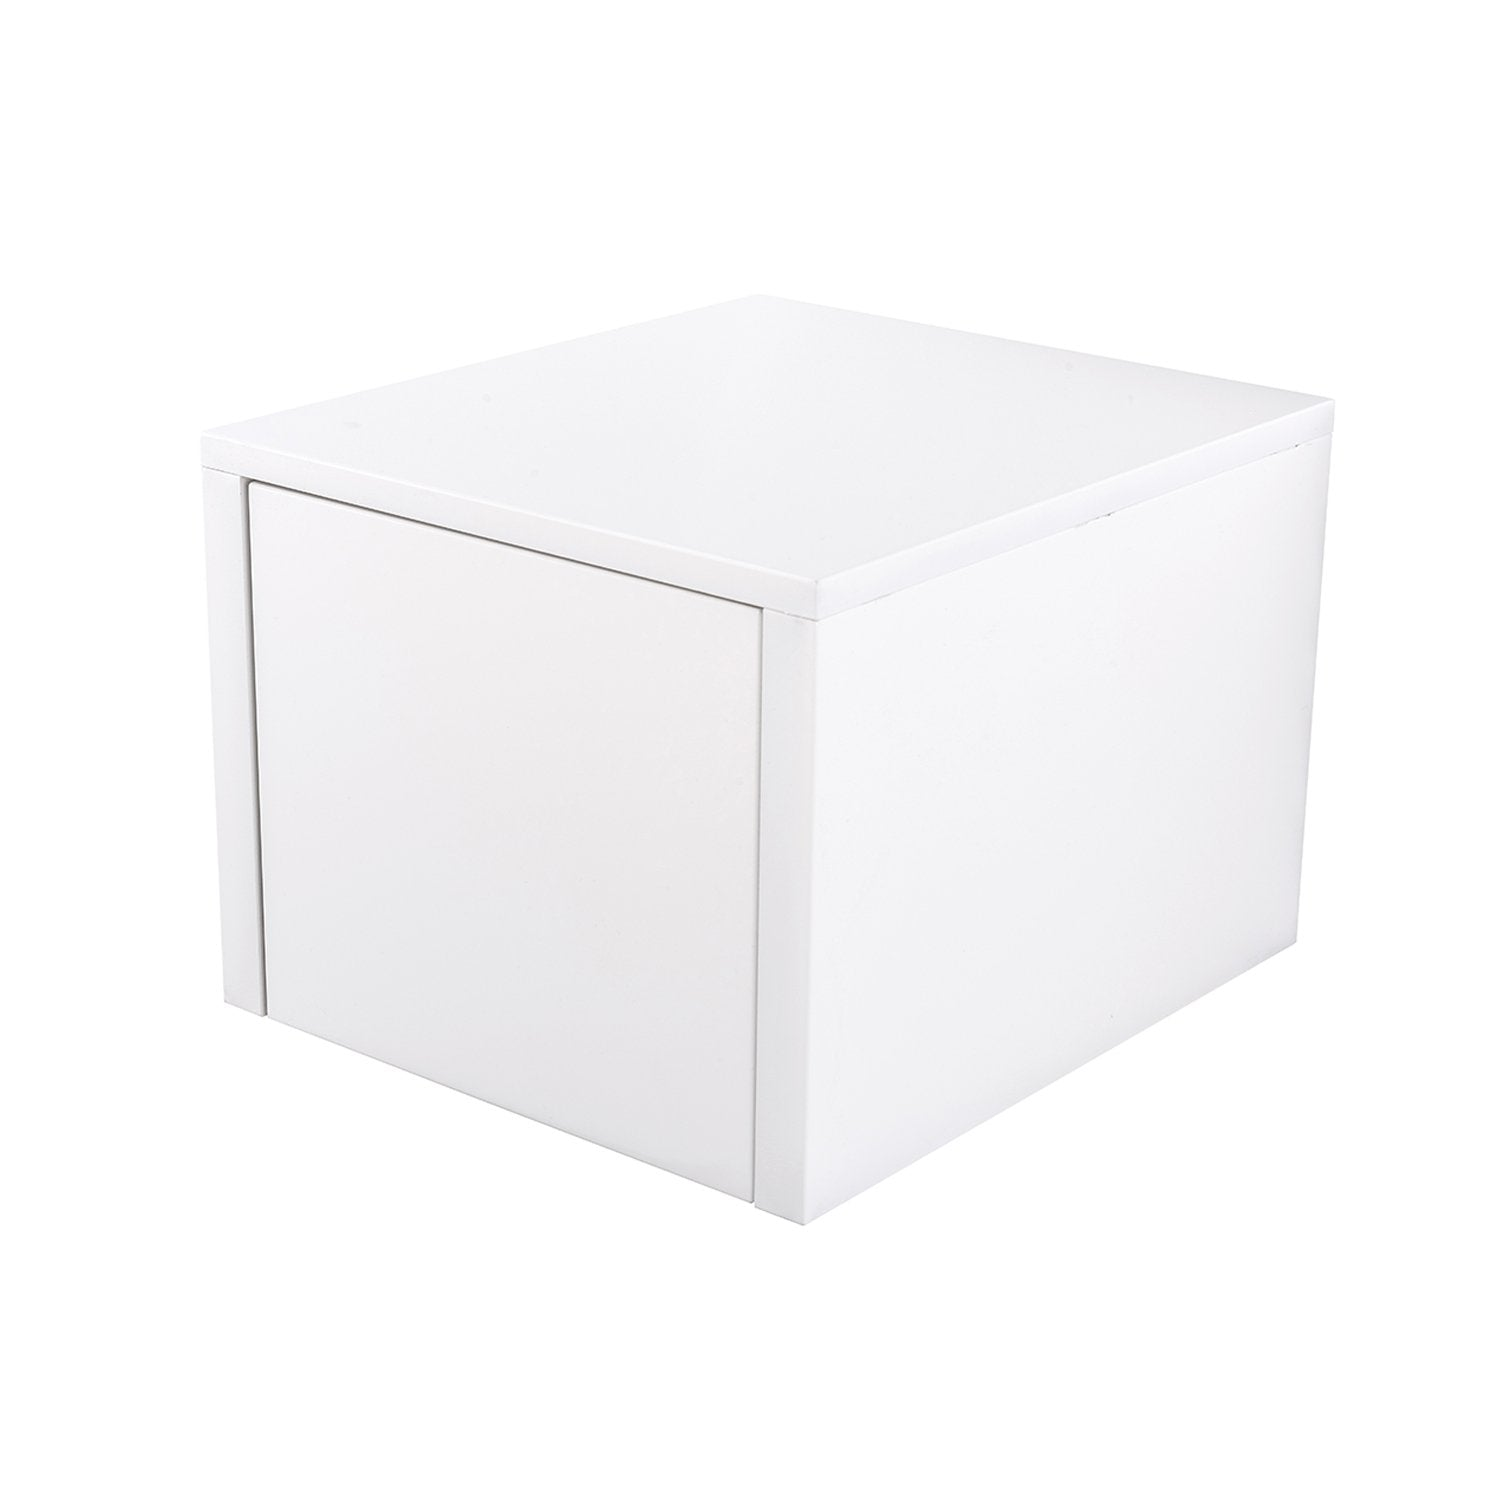 "16"" Low Side Cabinet, Wall Mount, 1 Drawer, White Gloss, 'OHANA Collection by DAX"